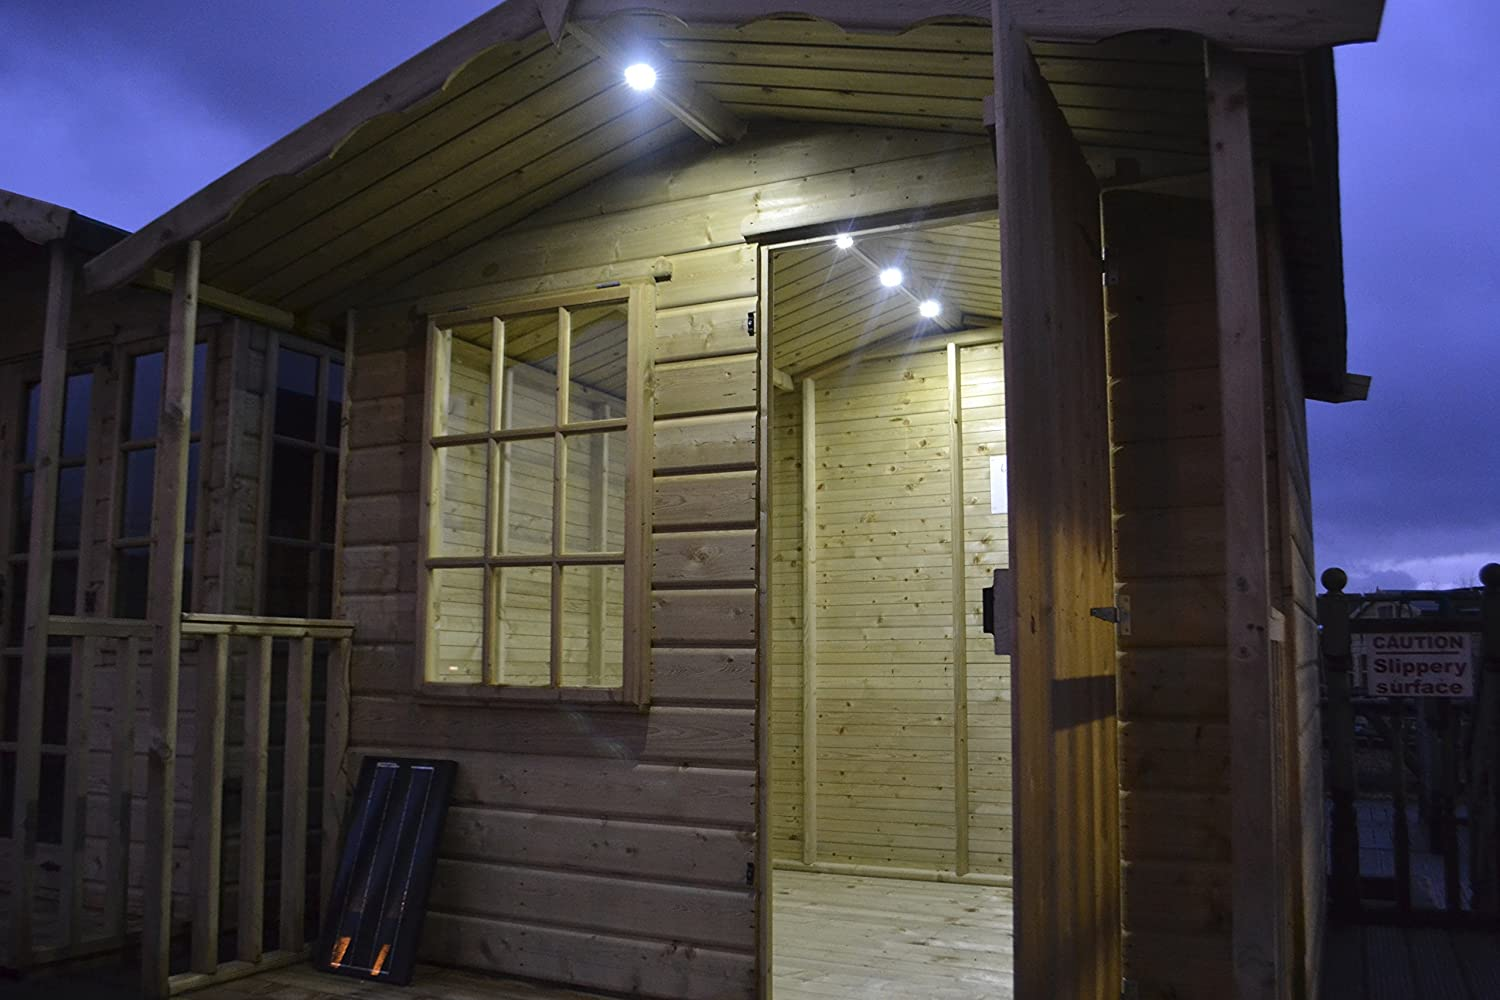 summer house lighting. Britalitez Solar Lighting Kit, Medium, Suited For Sheds, Summer Houses, Small Outbuildings, Stables, Garage, Container, Off The Grid Power: Amazon.co.uk: House R